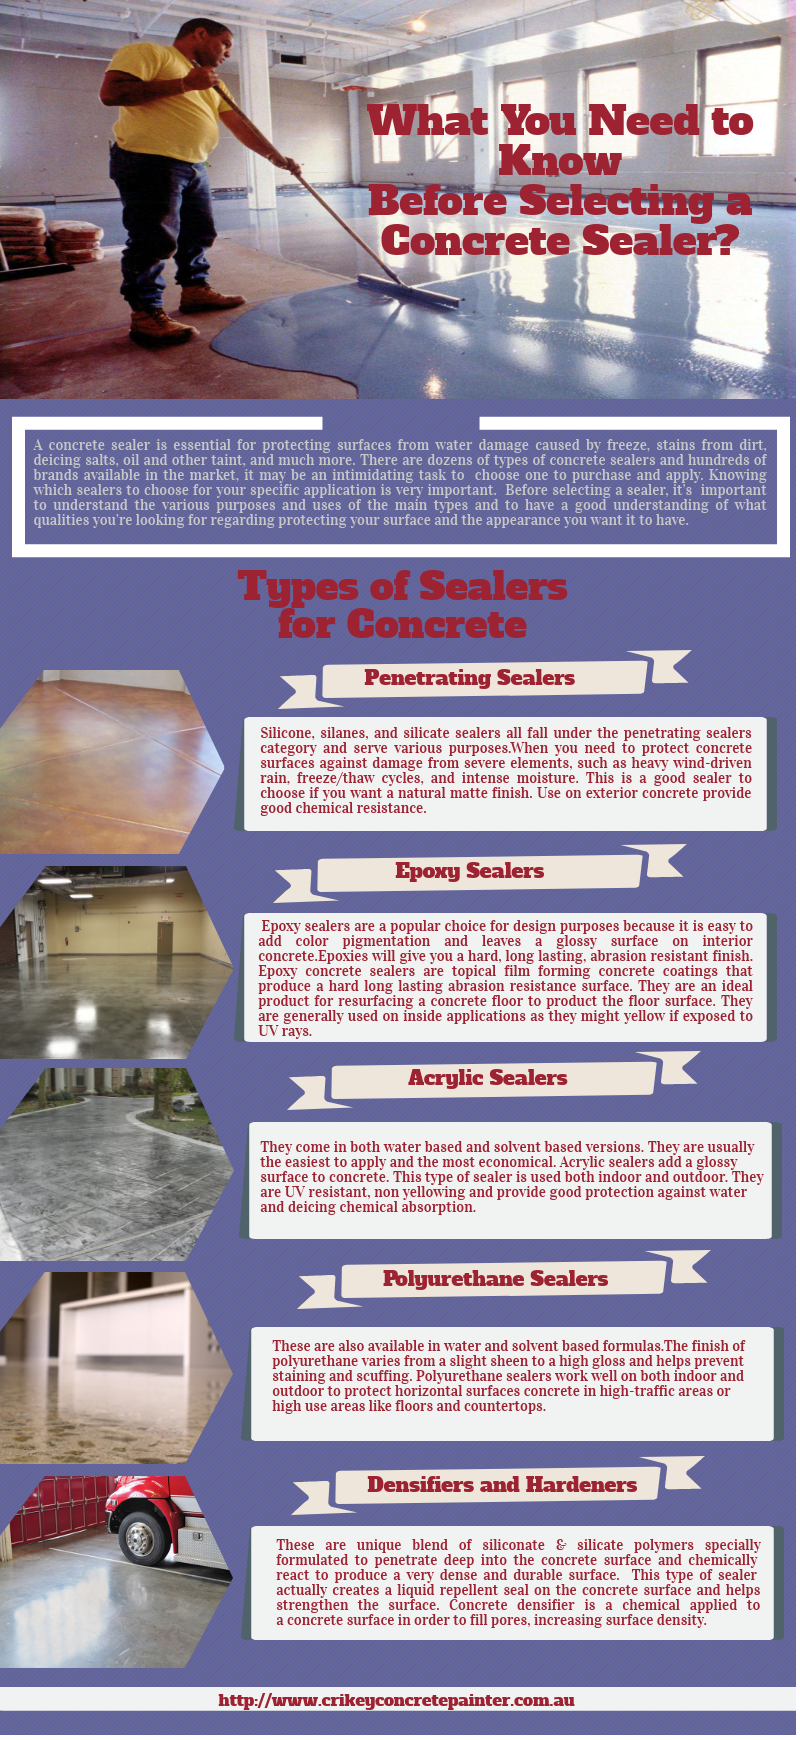 What You Need to Know Before Selecting a Concrete Sealer?